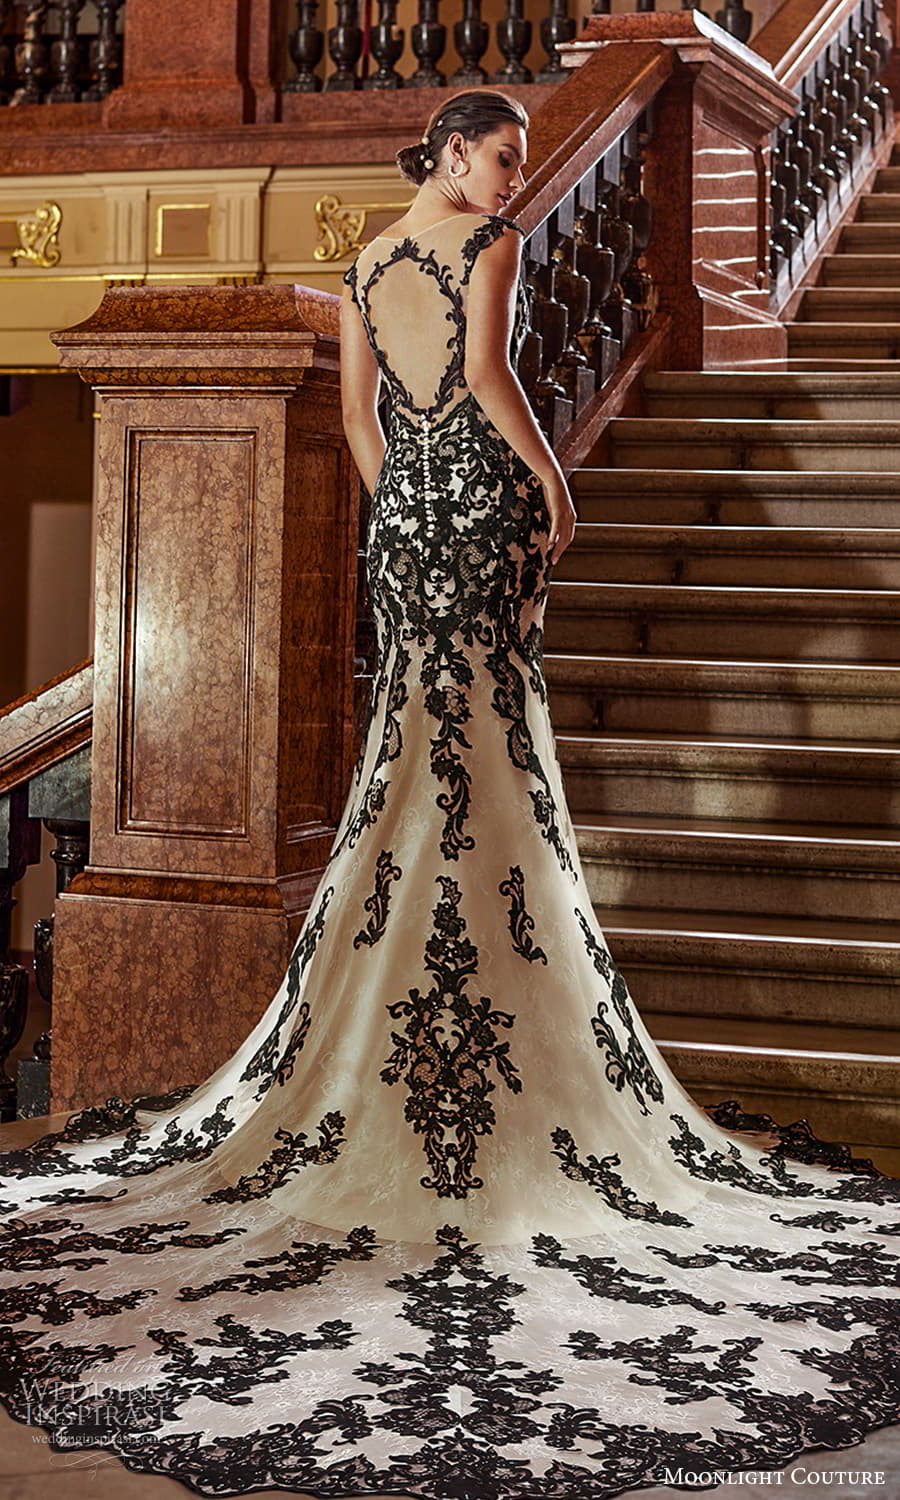 moonlight couture fall 2021 bridal cap sleeves off shoulder sweetheart neckline fully embellished black lace sheath wedding dress chapel train (5) bv